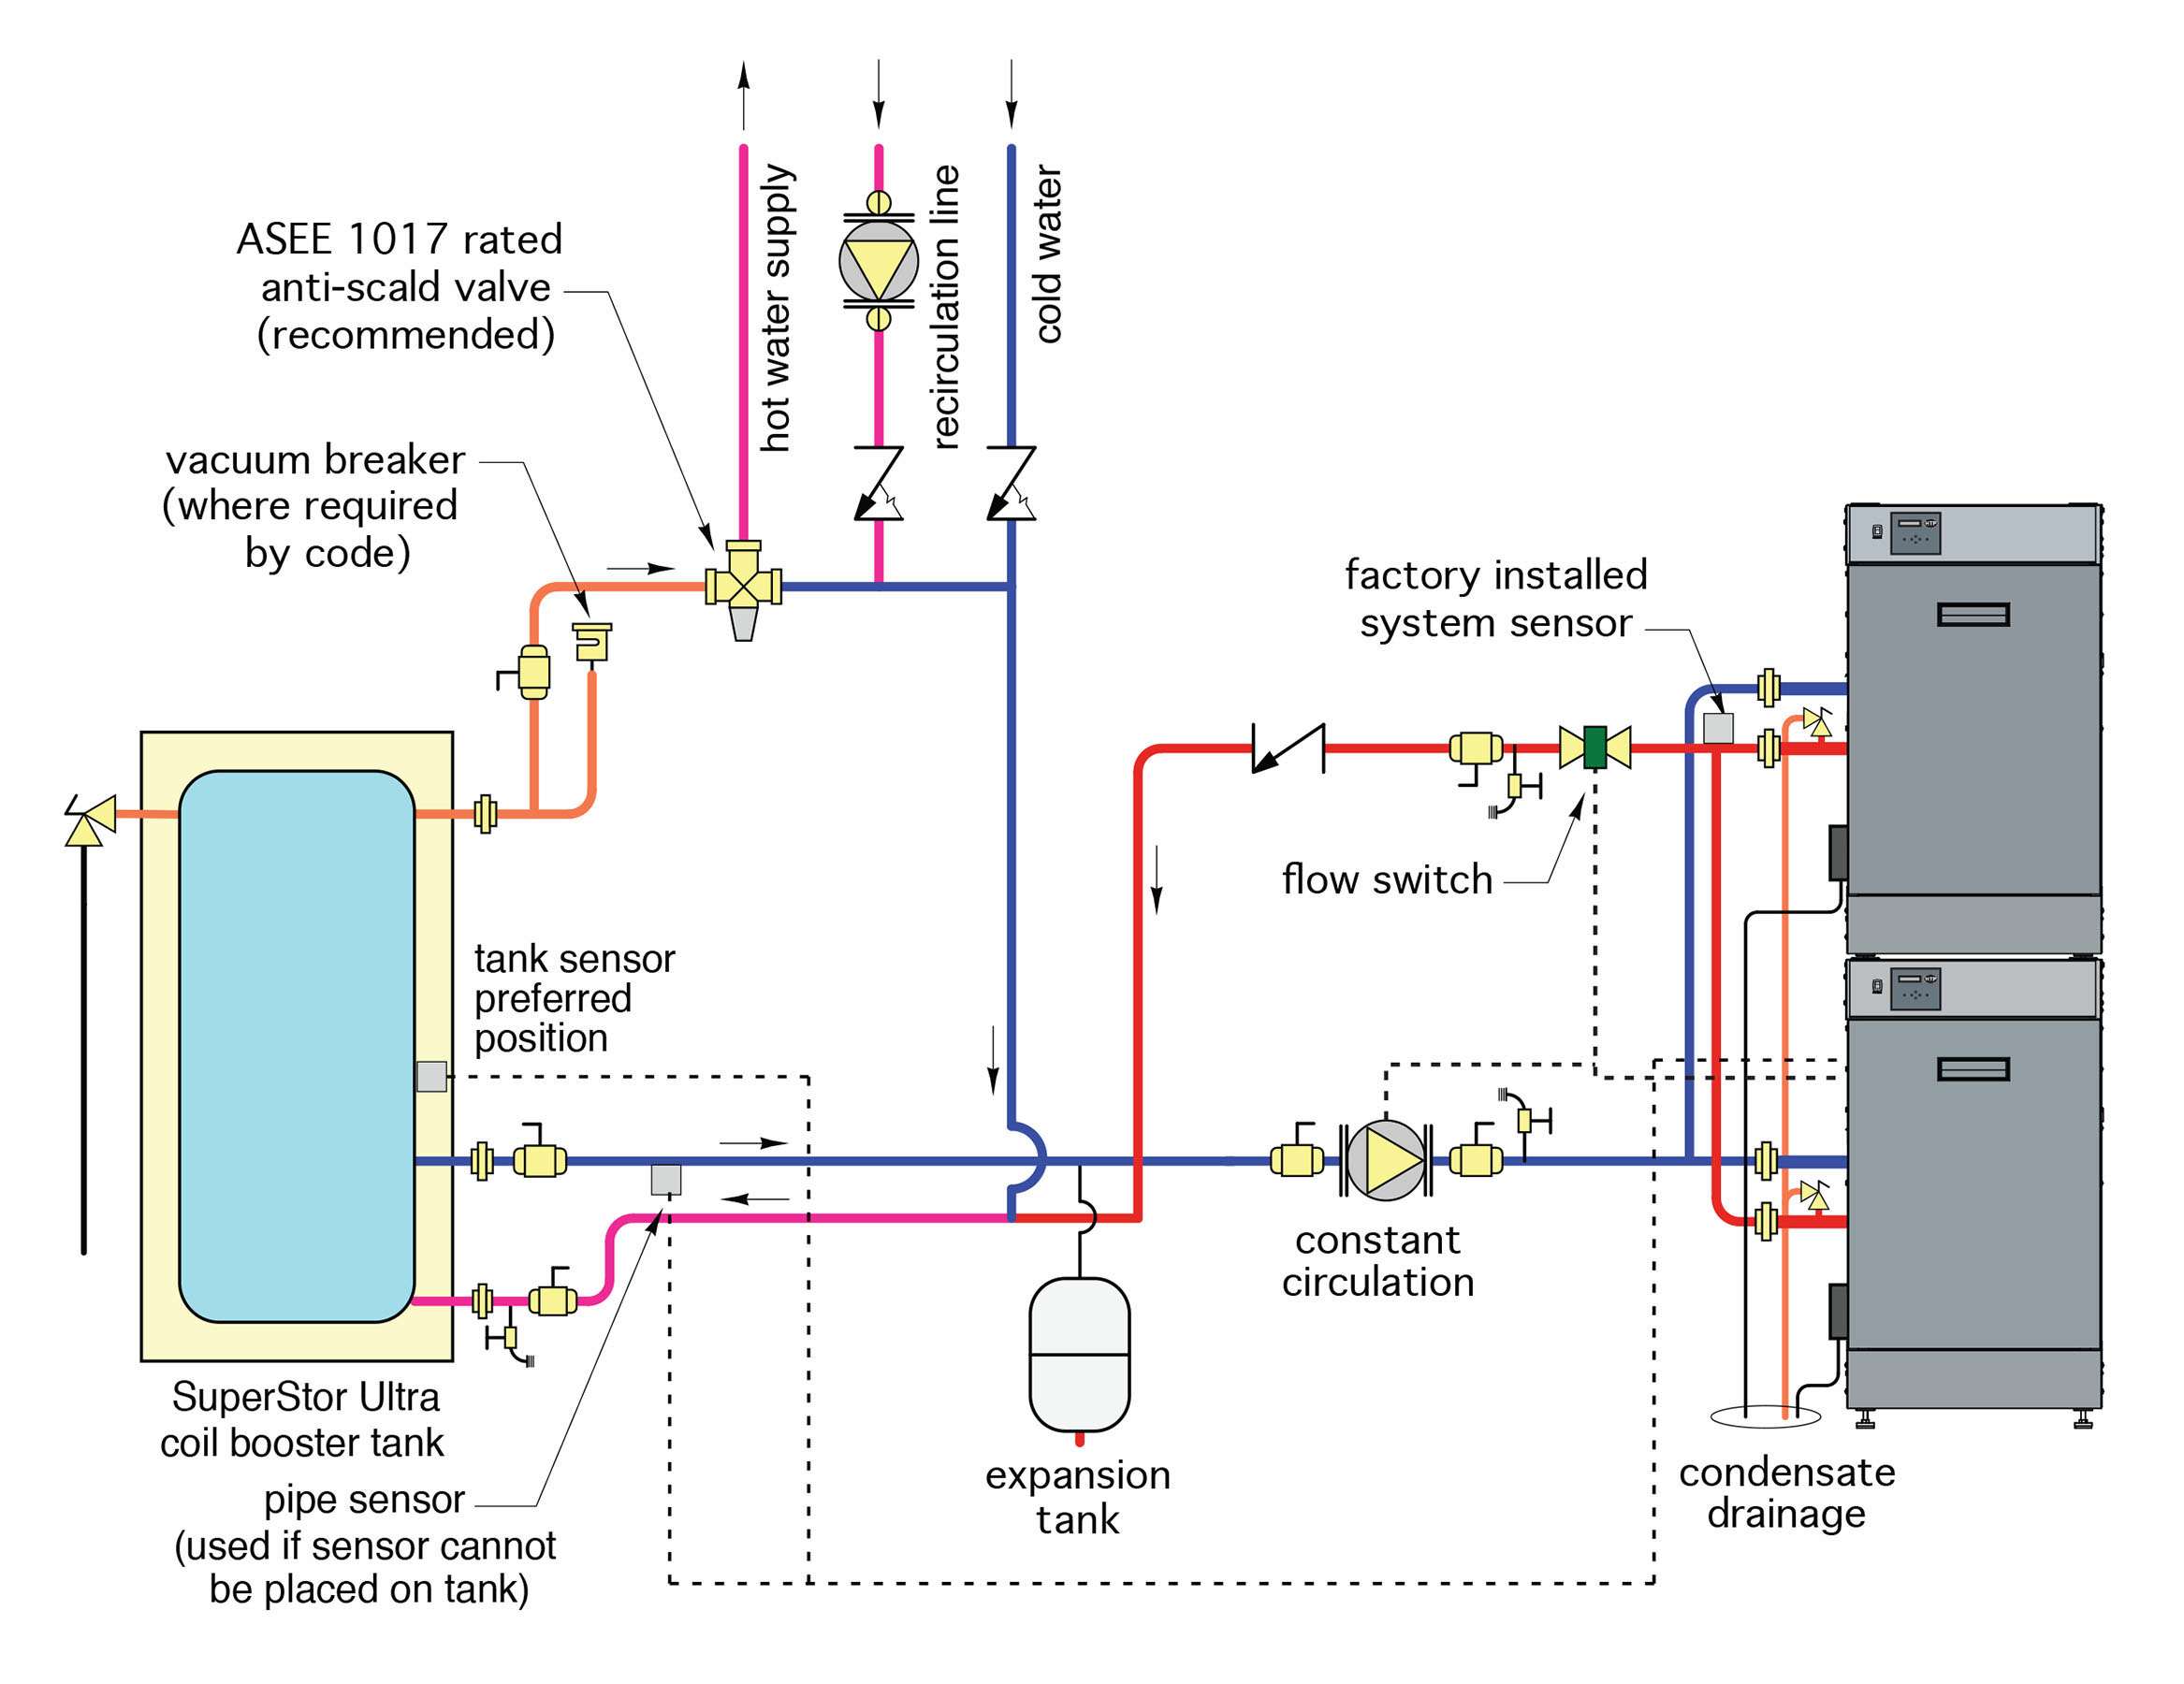 piping diagram for water softener htp - mod con double stack boiler heat piping diagram for space #3